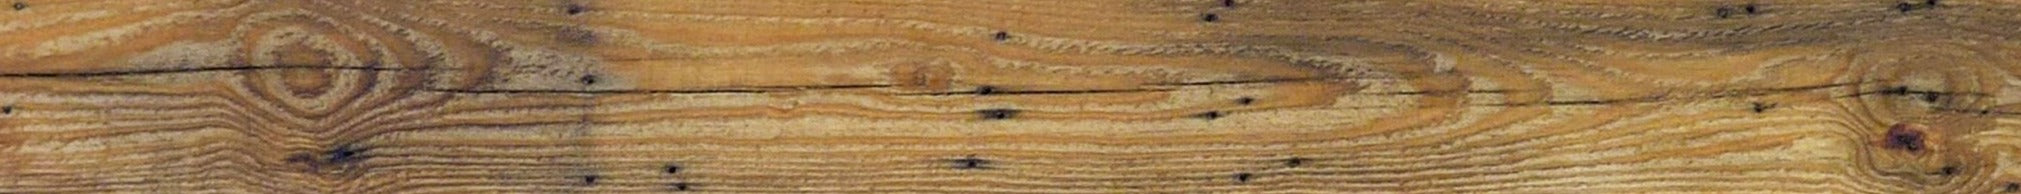 Wallplank's Reclaimed Wood Trim Wall Panels - Wallplanks